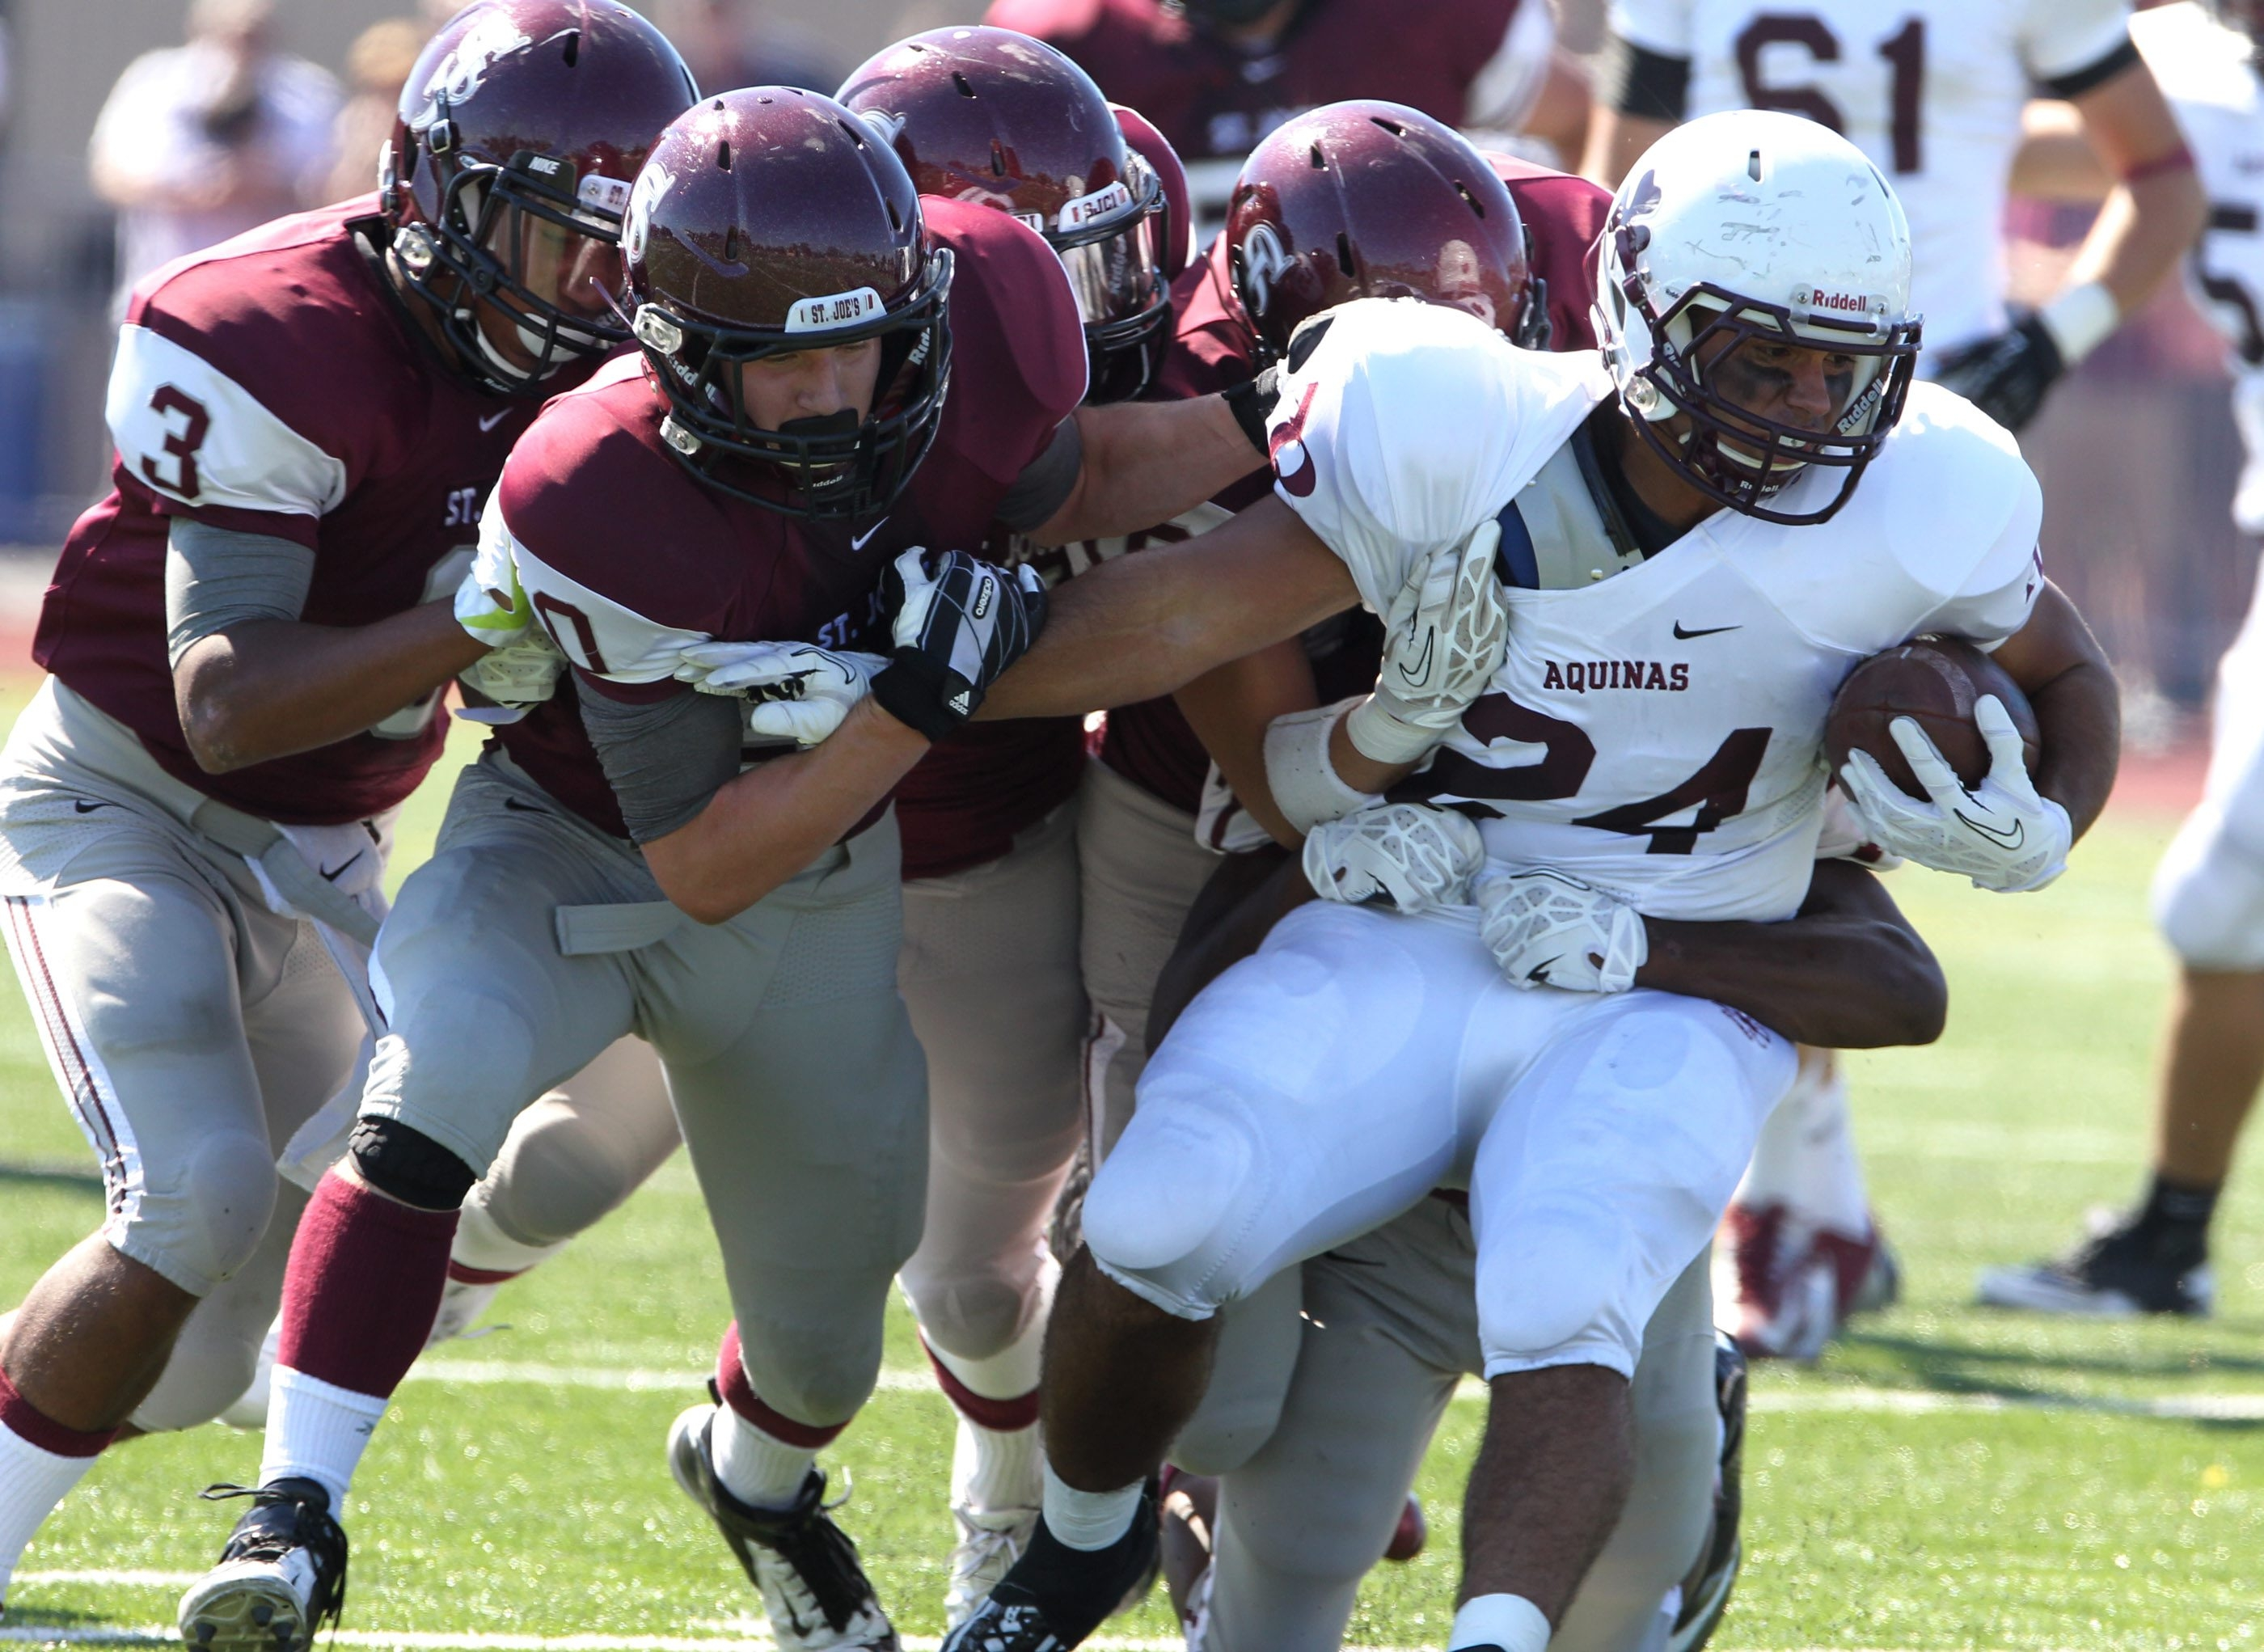 Luch Pietropaolo fights for first-down yardage in the first half for Aquinas, which owns wins over St. Joe's, Canisius and Timon.